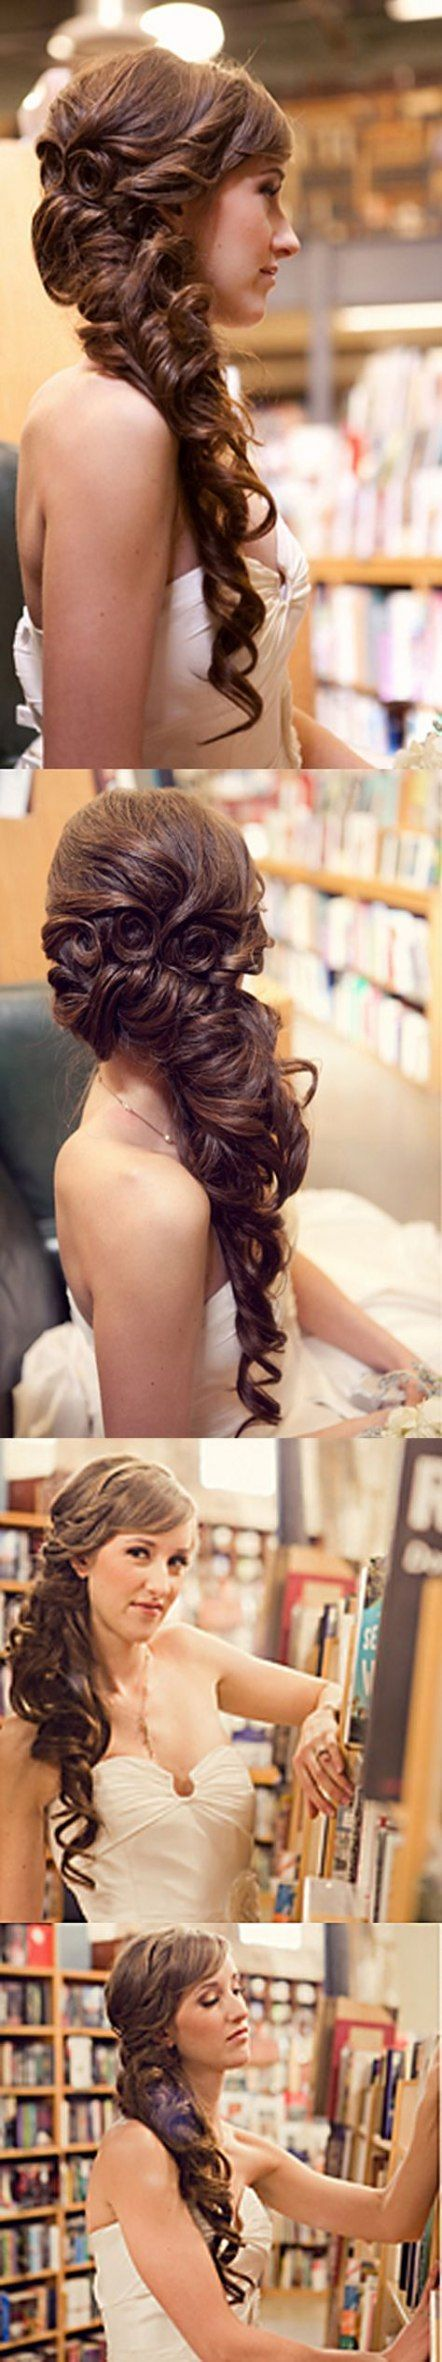 Hairstyles Prom Brunette 30 Ideas